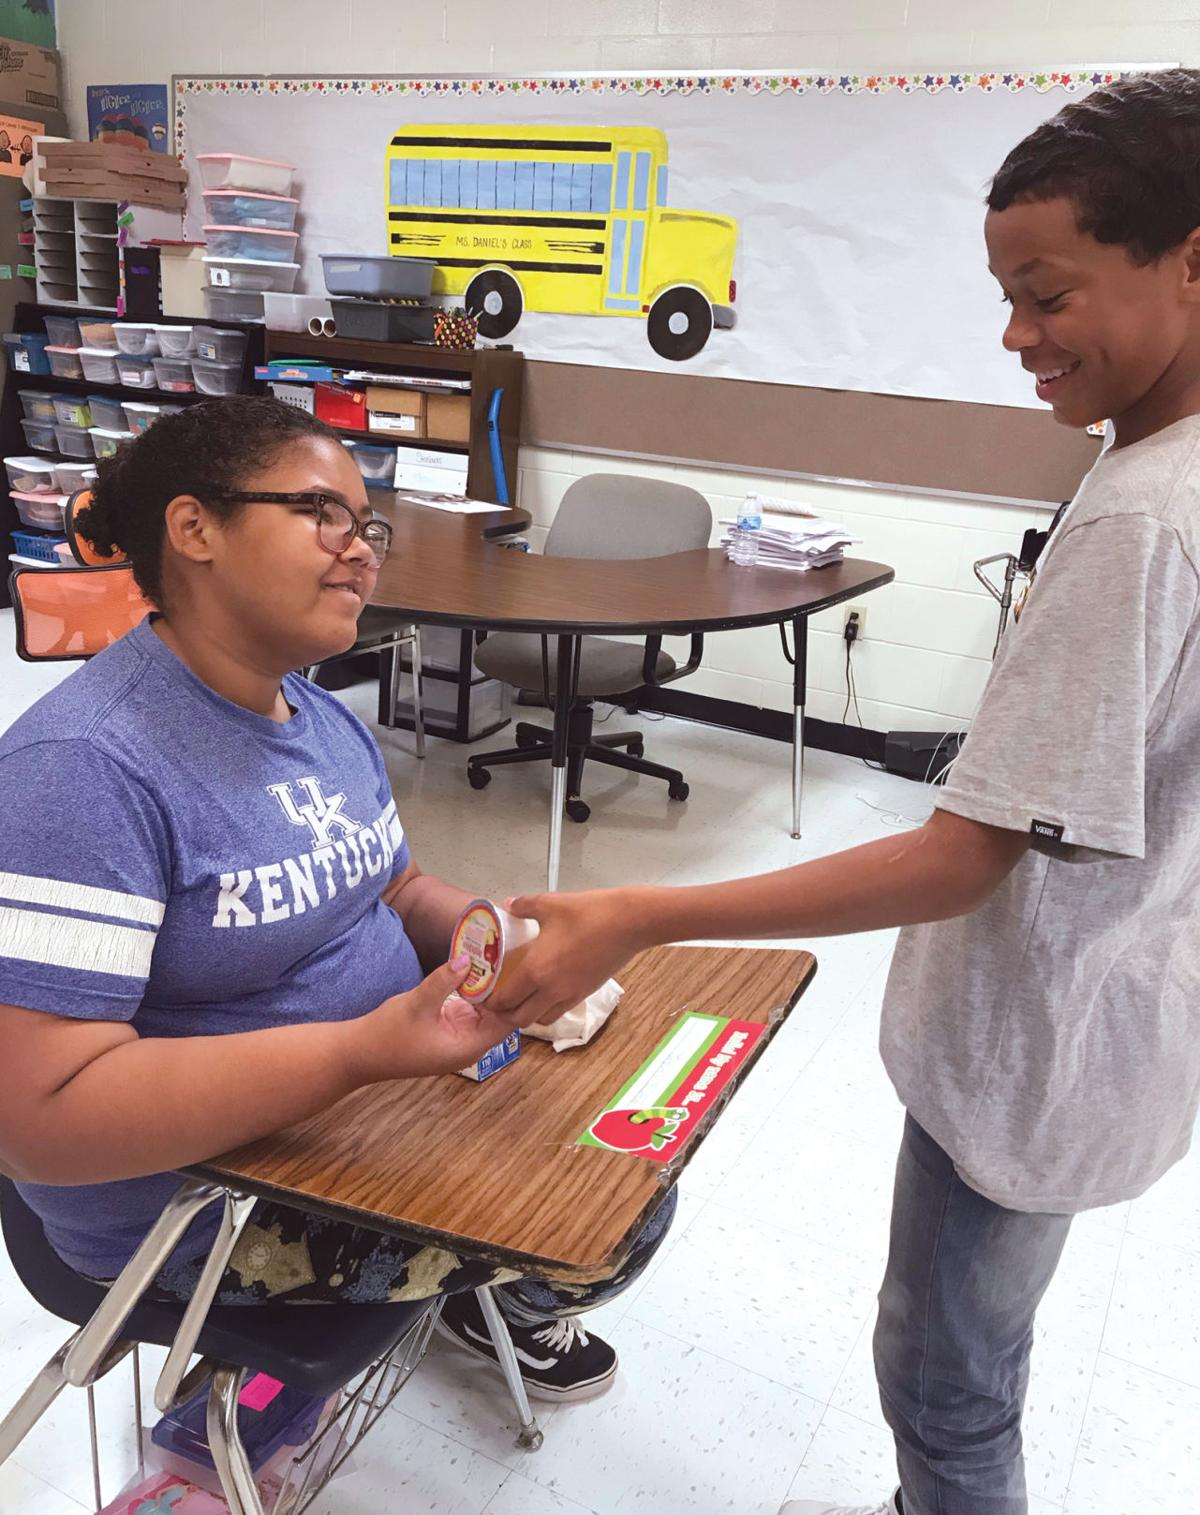 8th-grader prioritizes helping others